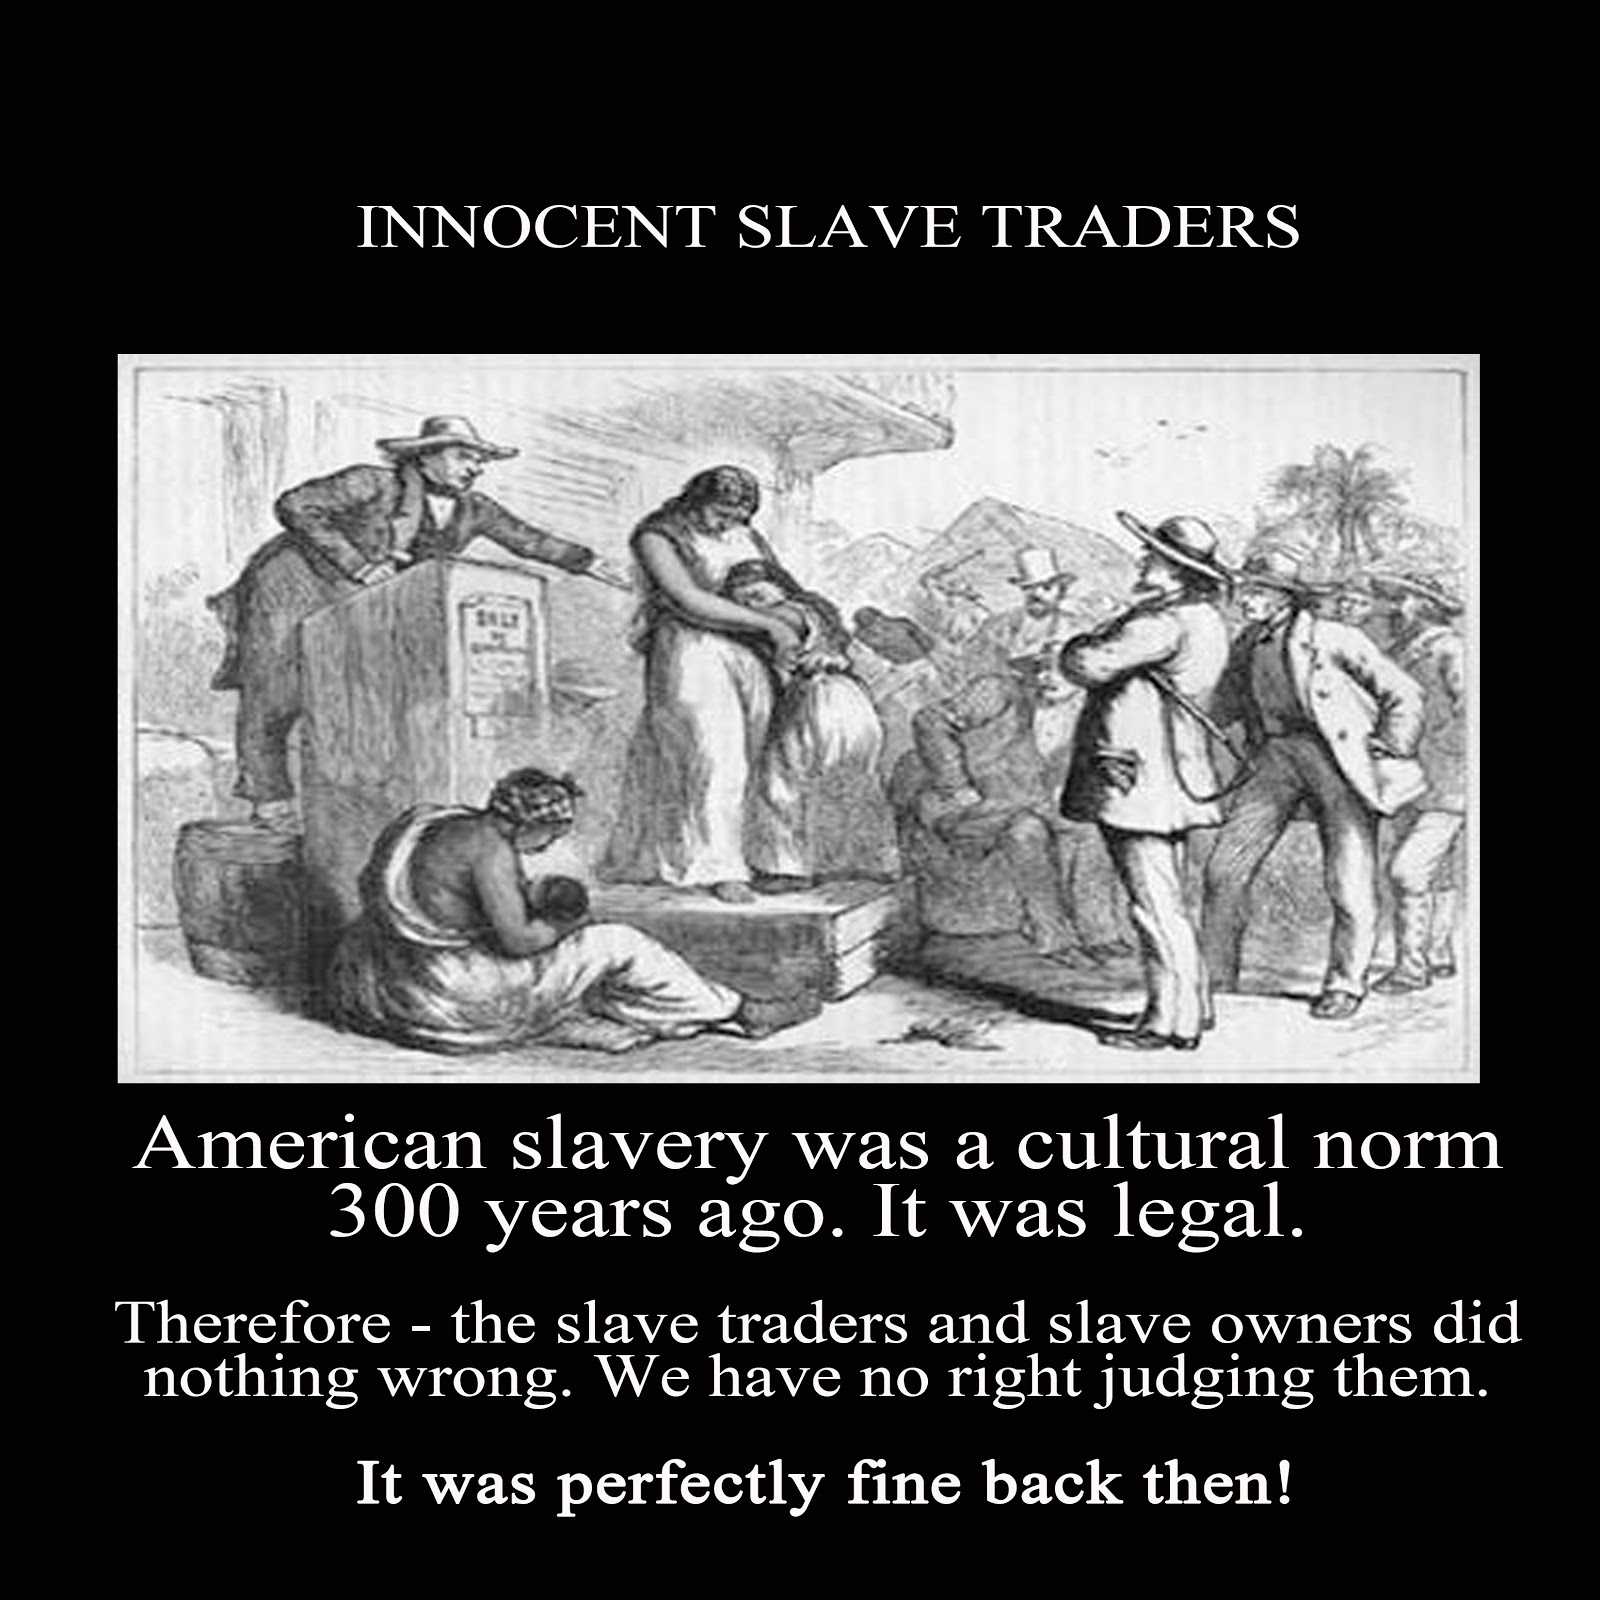 Slavery experiences and perspectives